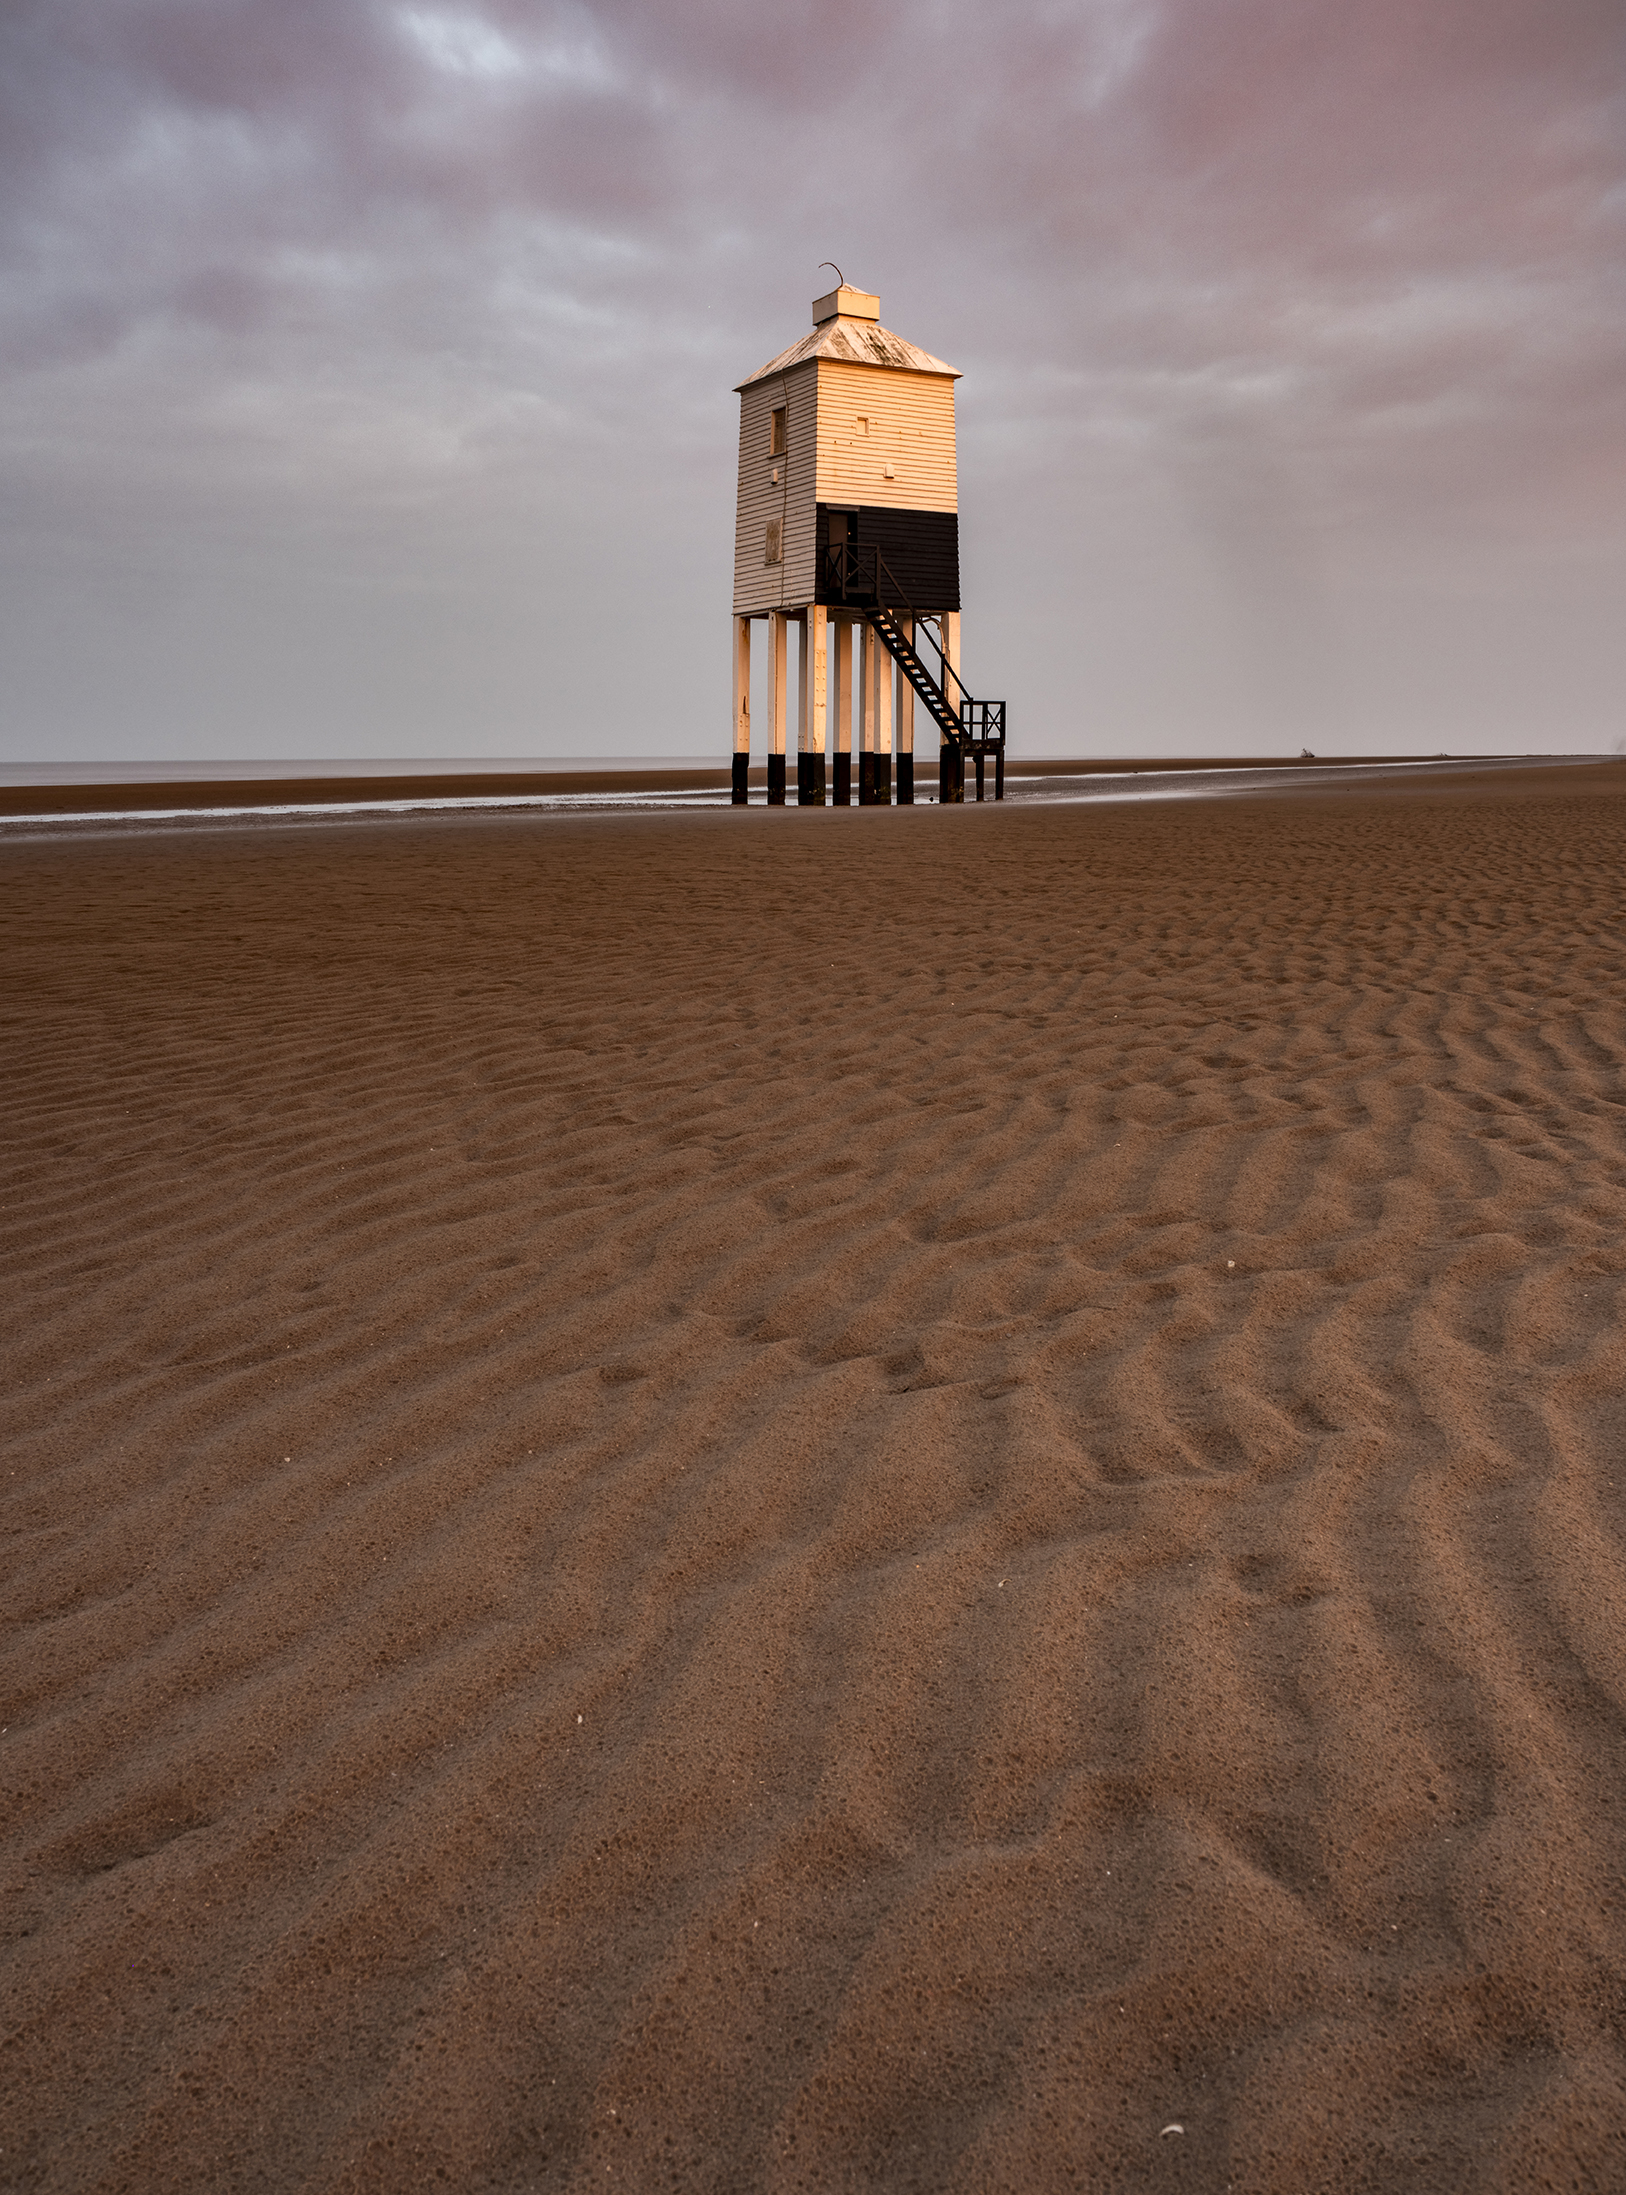 Burnham-on-sea low lighthouse at sunrise